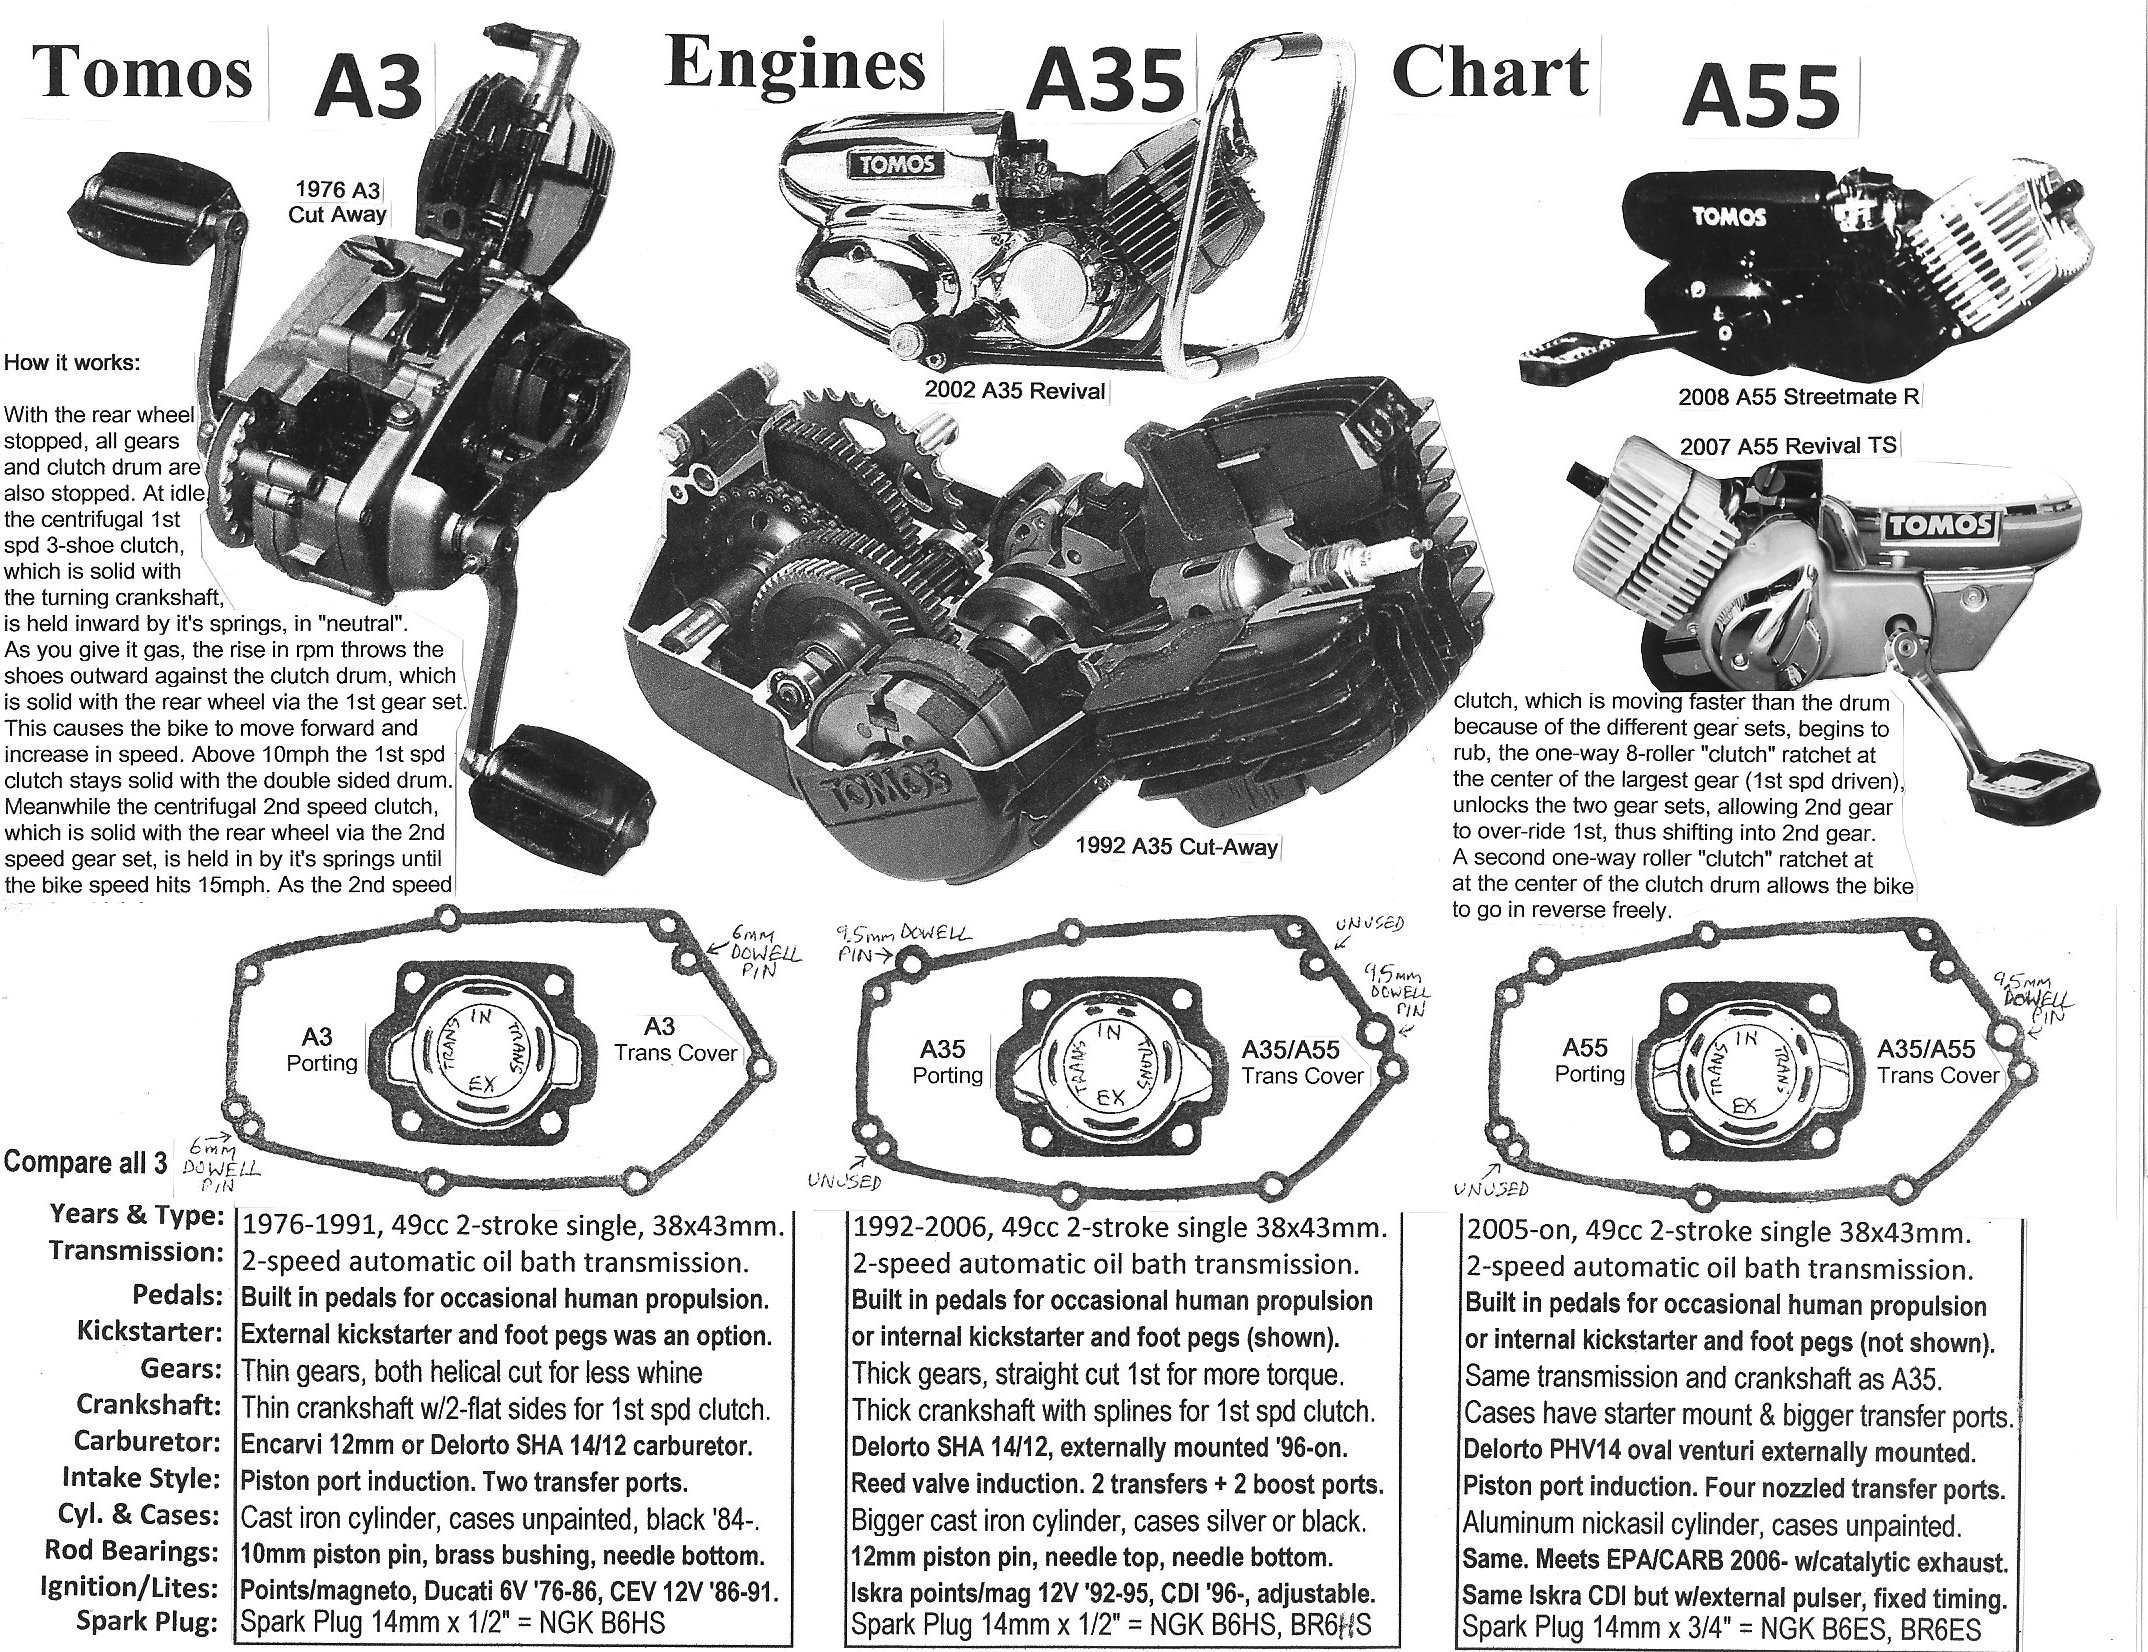 Tomos A55 Engine Diagram Moped Scooter Wiring A35 Related Post